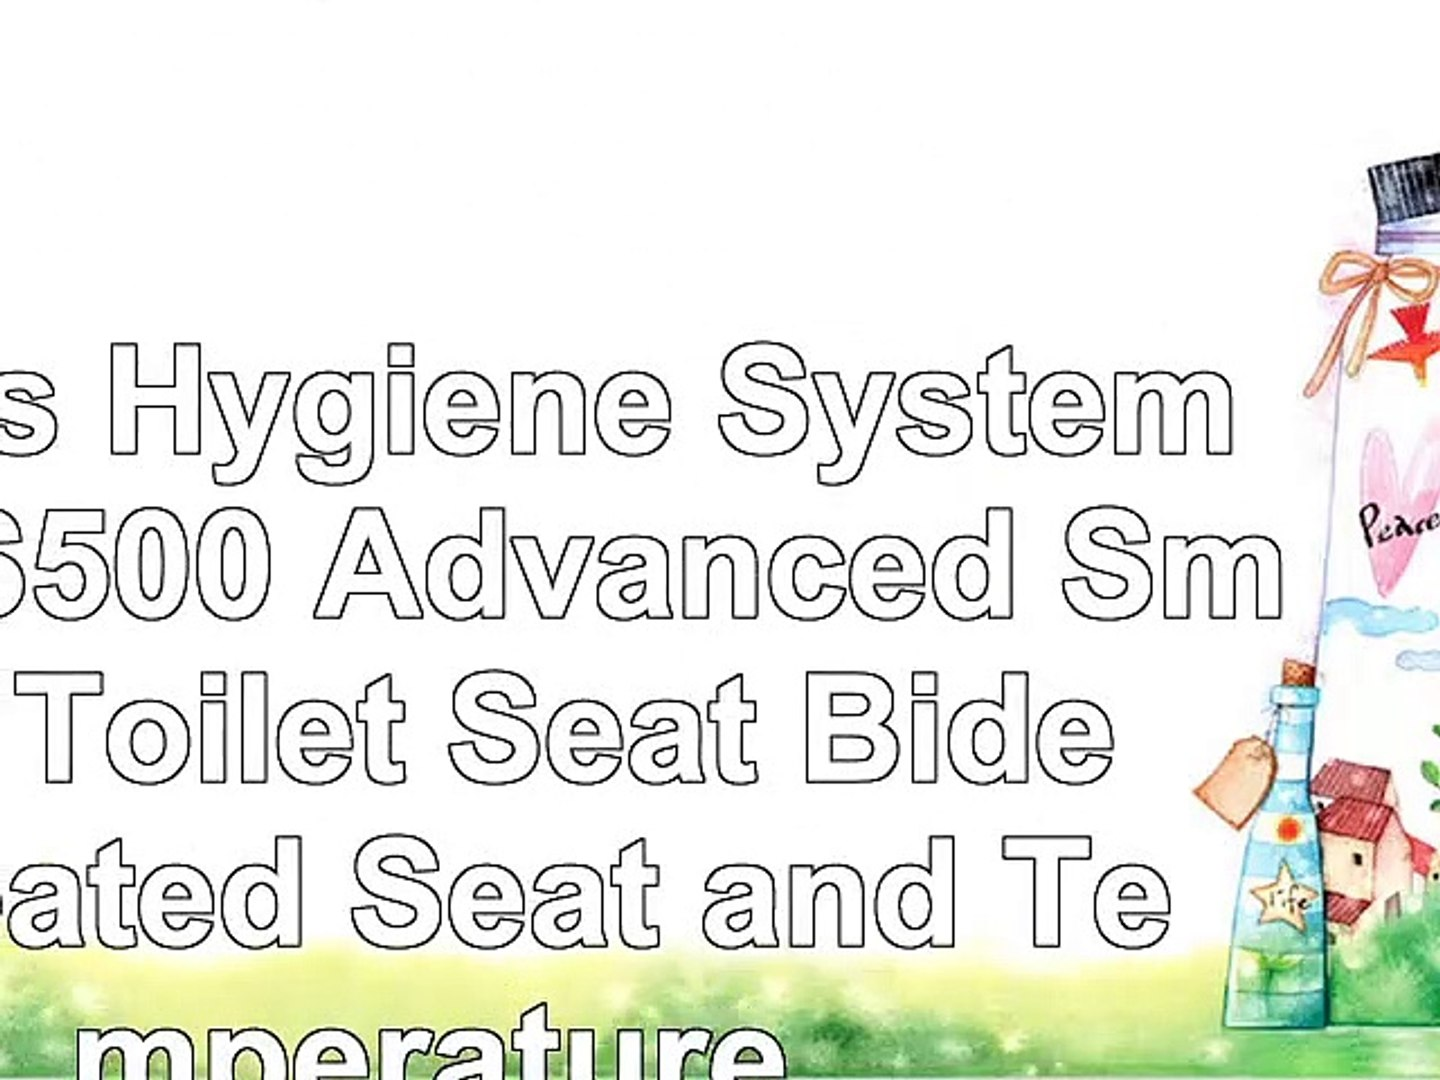 Swell Lotus Hygiene Systems Ats500 Advanced Smart Toilet Seat Bidet Heated Seat And Temperature Creativecarmelina Interior Chair Design Creativecarmelinacom